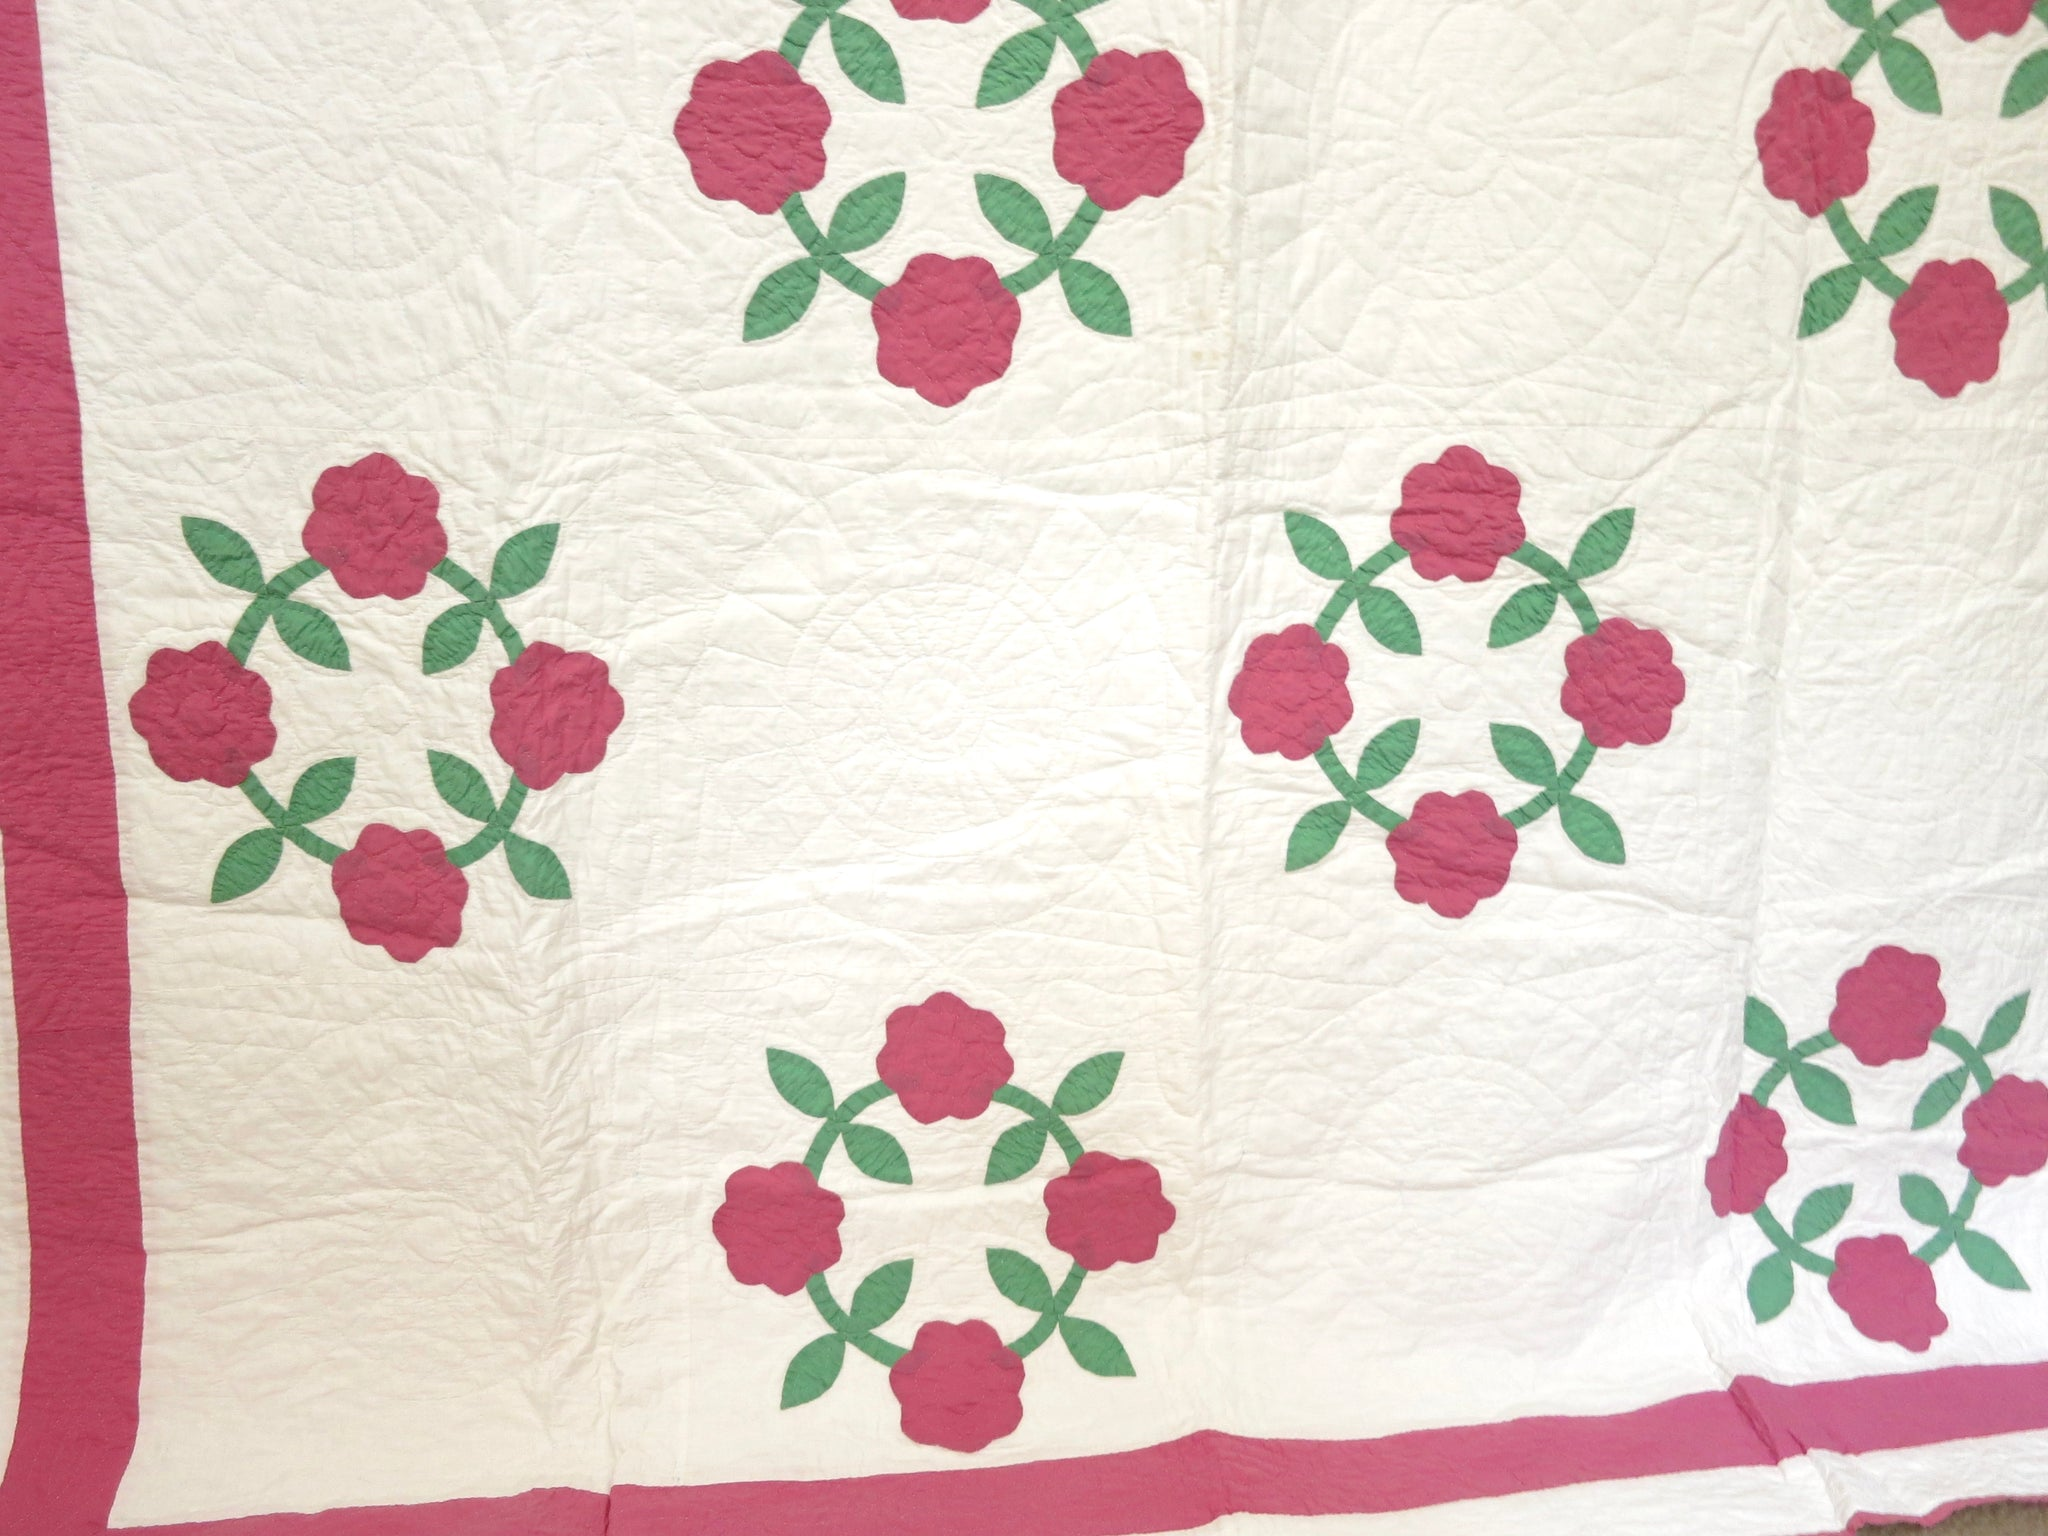 Rose Wreaths Vintage Applique Quilt 64 X 76 Inches Things Most Delightful